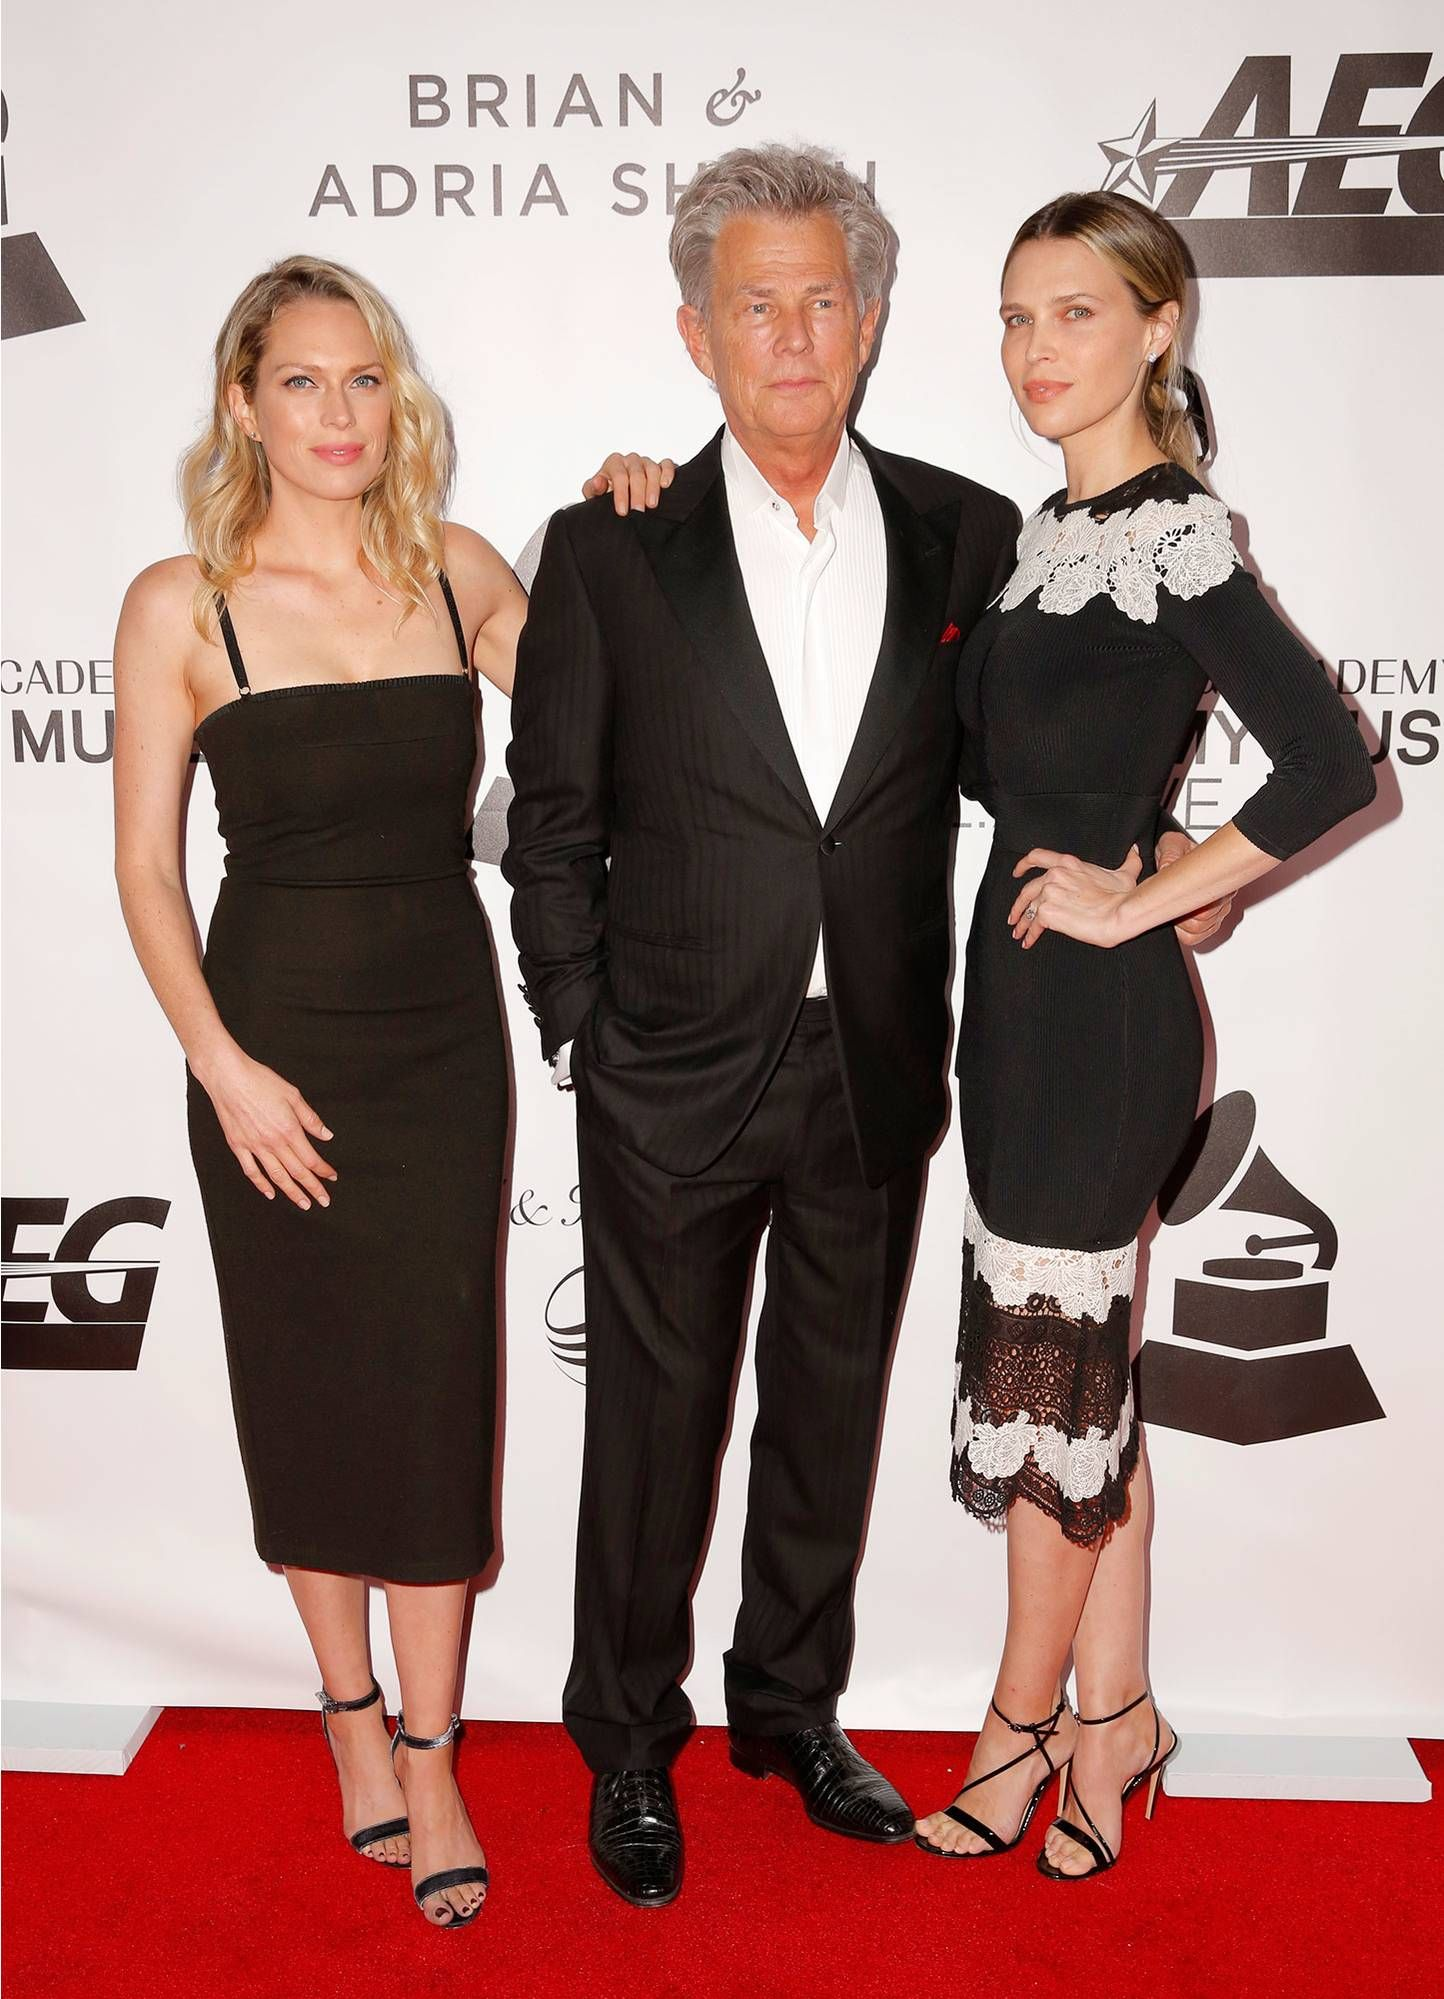 David Foster S Daughters Erin And Sara Joke About The Age Difference But Love His Fiancee Katharine Mcphee Source David Foster Daughters The Fosters Daughter